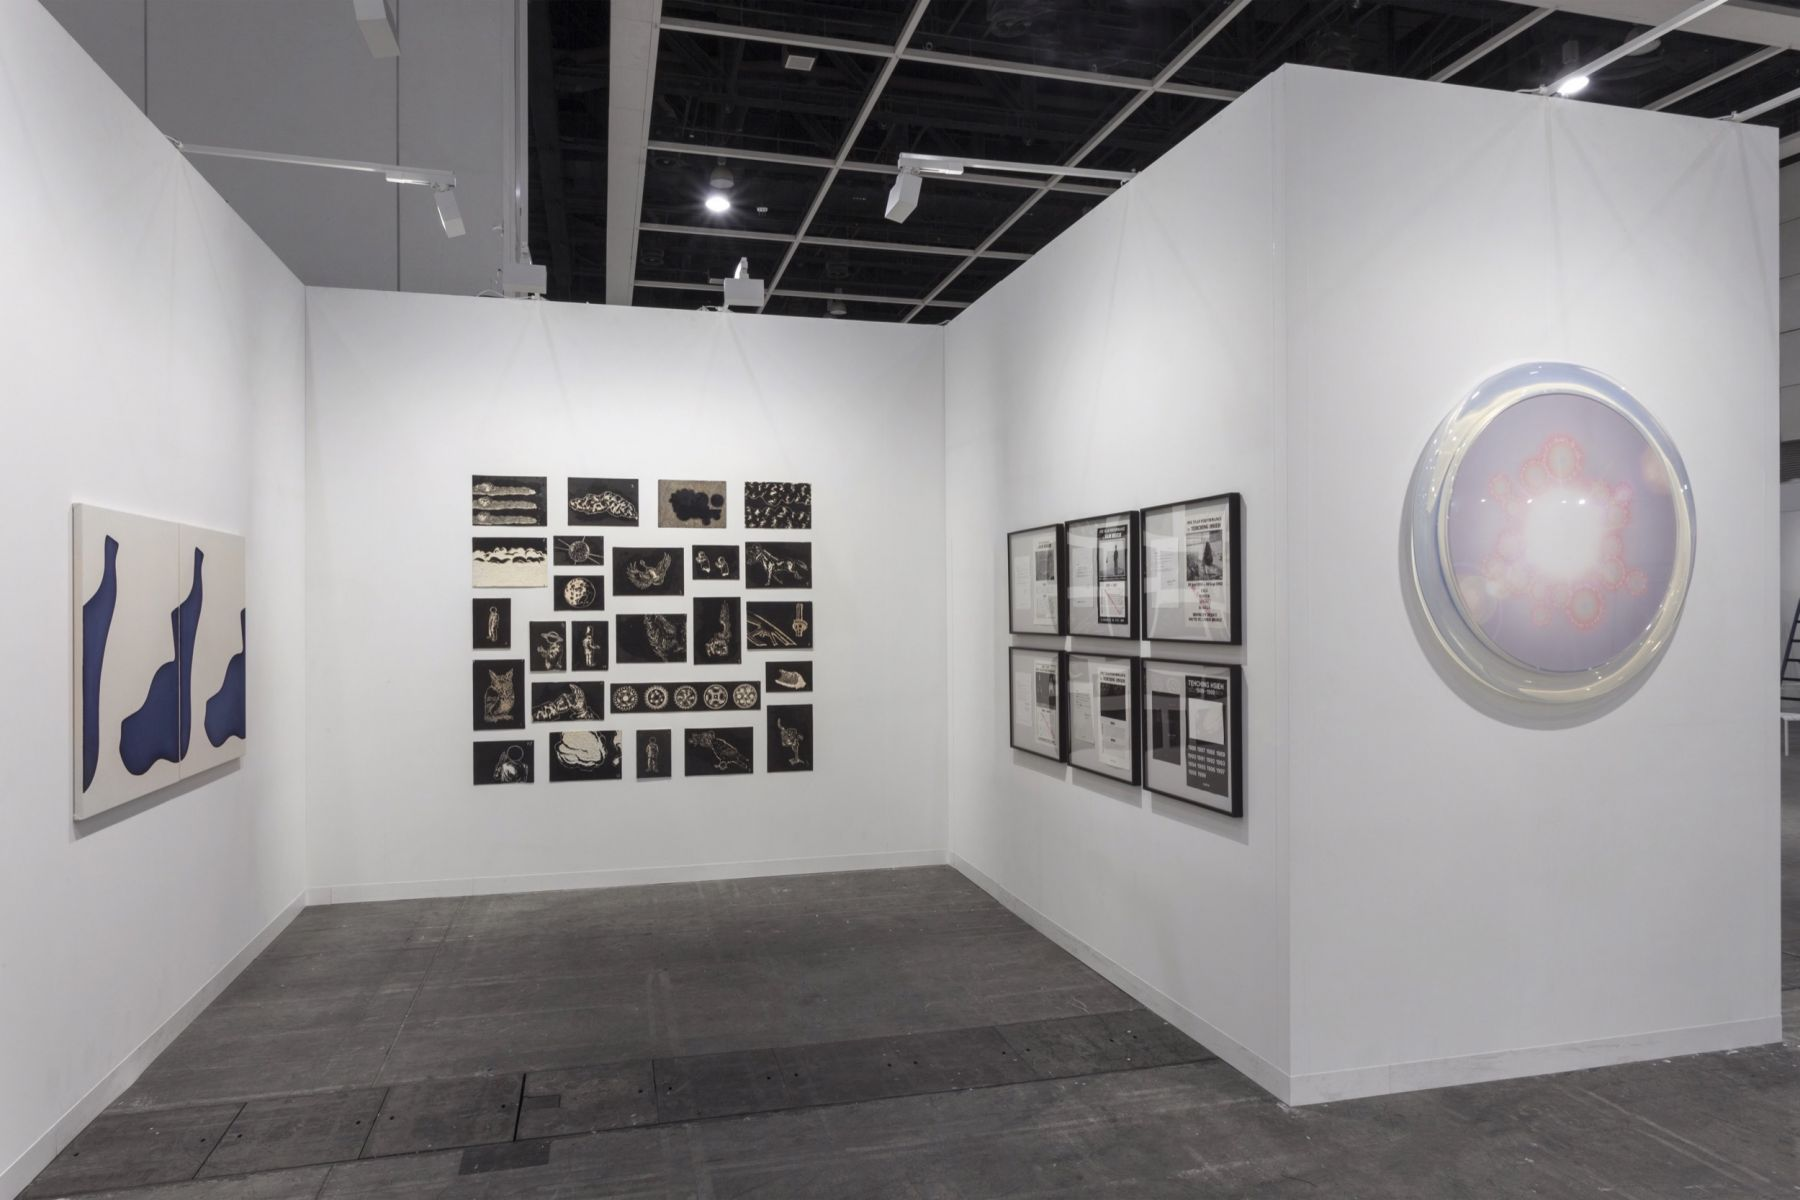 Sean Kelly at Art Basel Hong Kong 2018, March 29 - 31, 2018, Pier 94, Booth 1D09